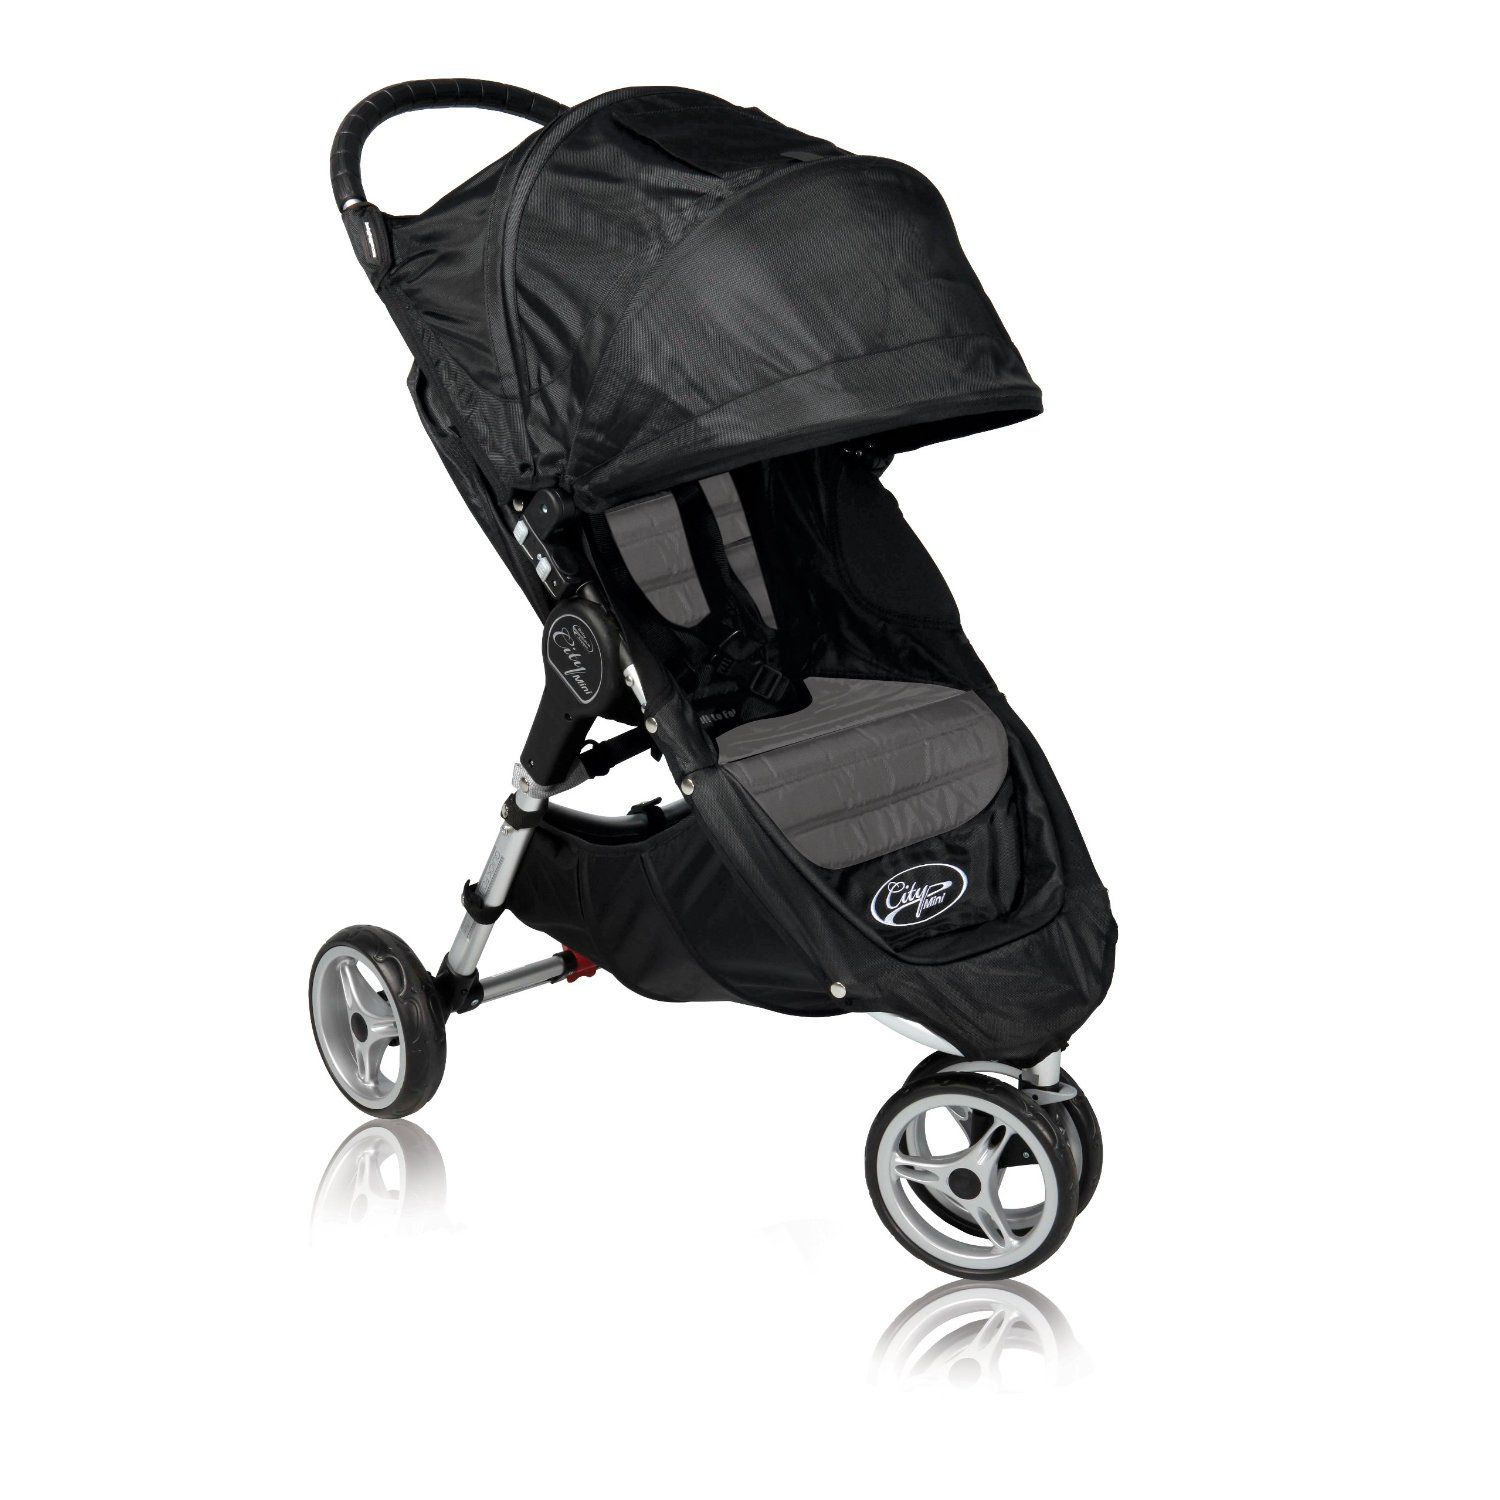 Best stroller I've ever owned. Super light and easy to